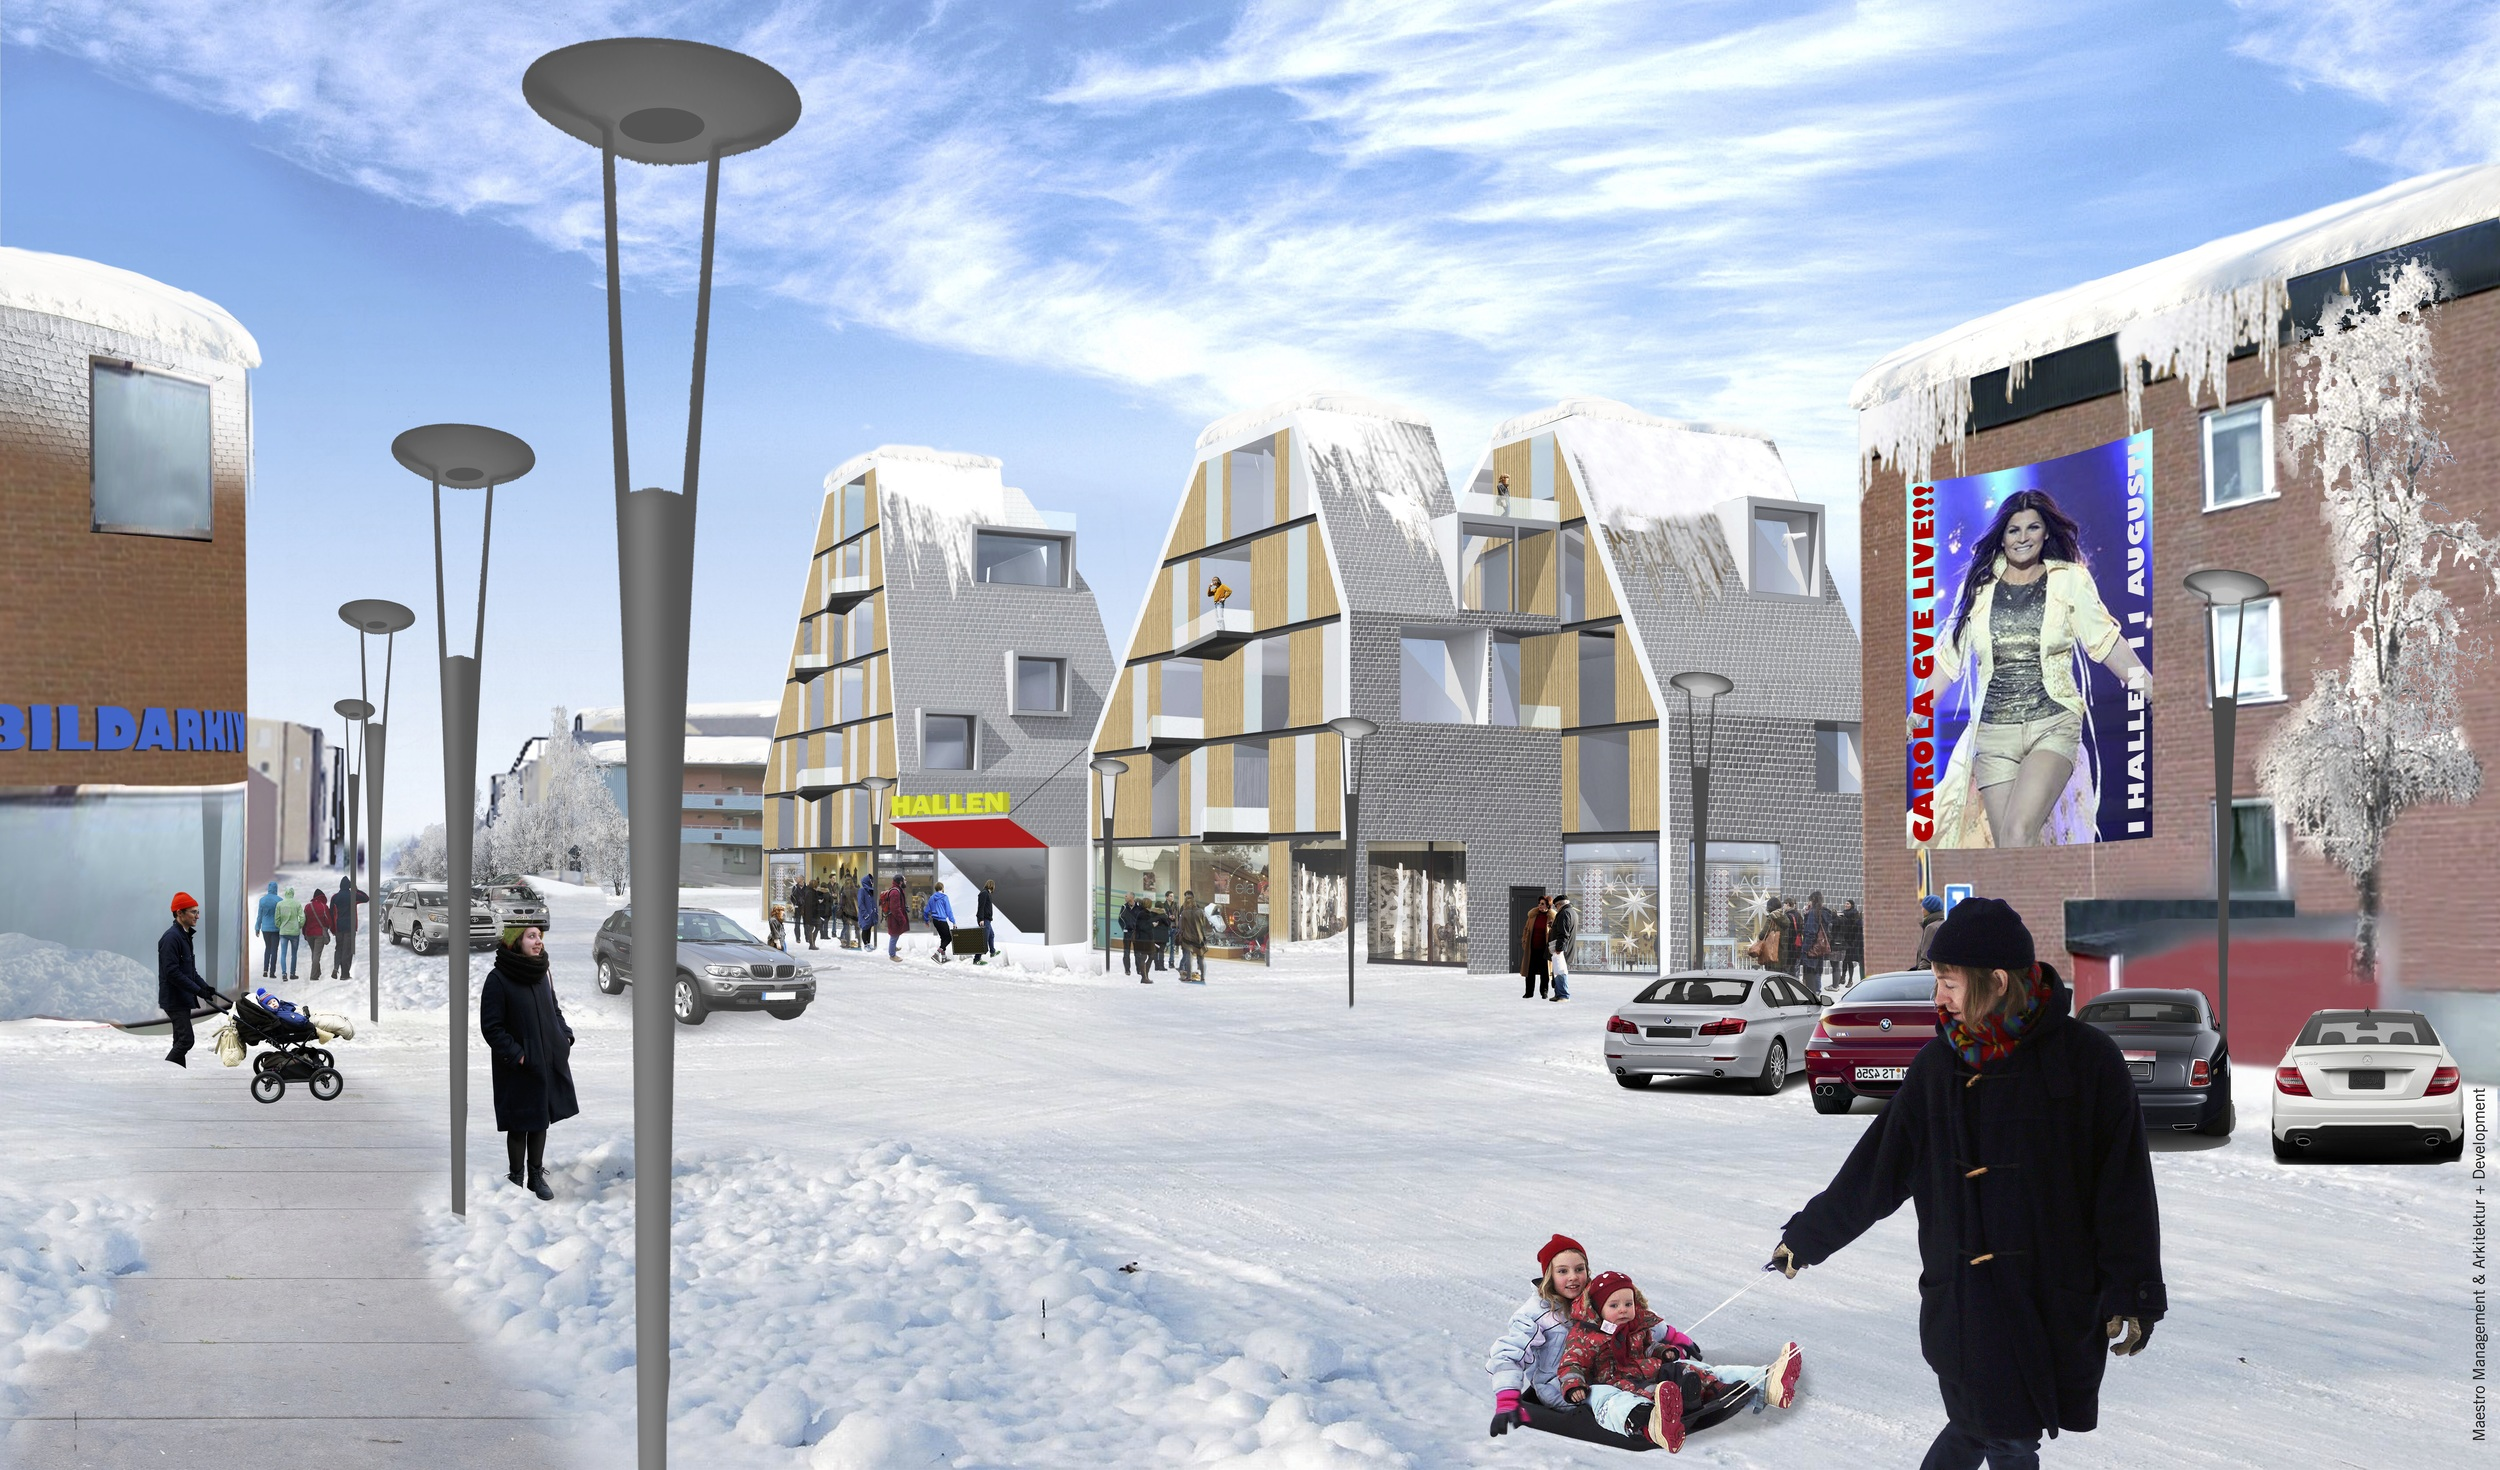 An ice arena can be put diagonally, with houses, shops and offices on the corners. Then the arena can be placed in the city center without creating dead facades or streets.